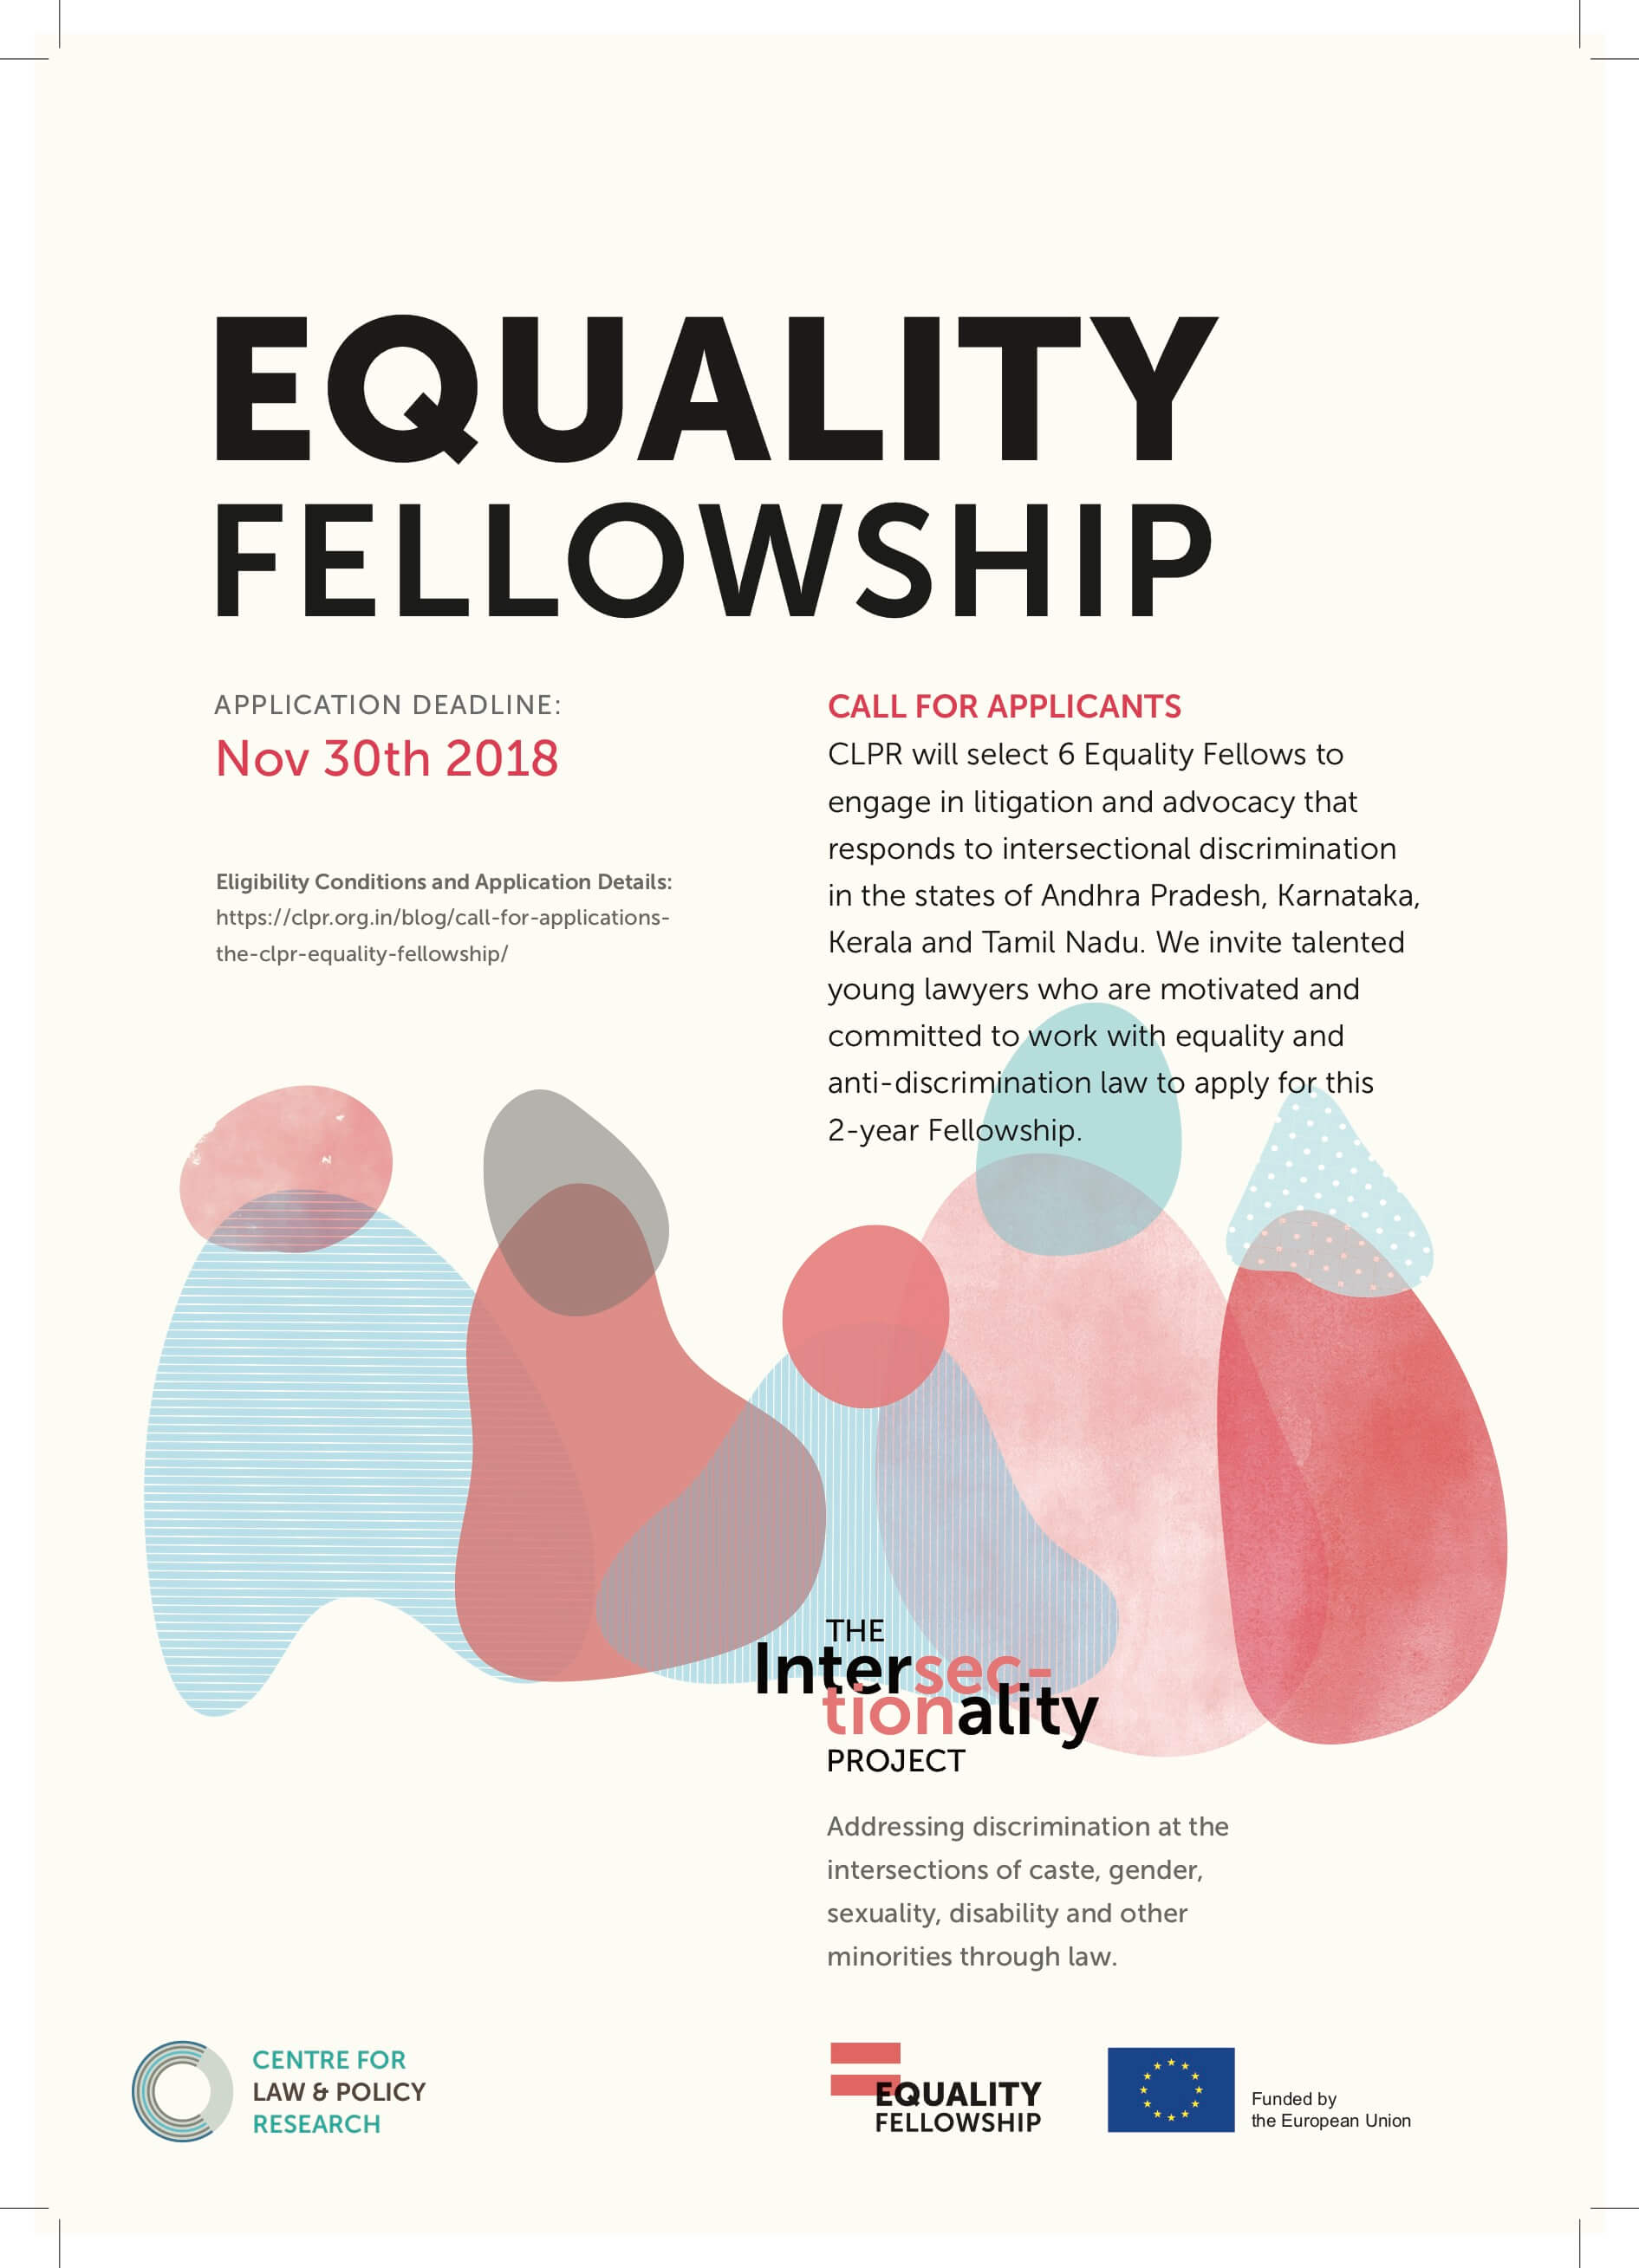 Applications for Centre for Law and Policy Equality Fellowships